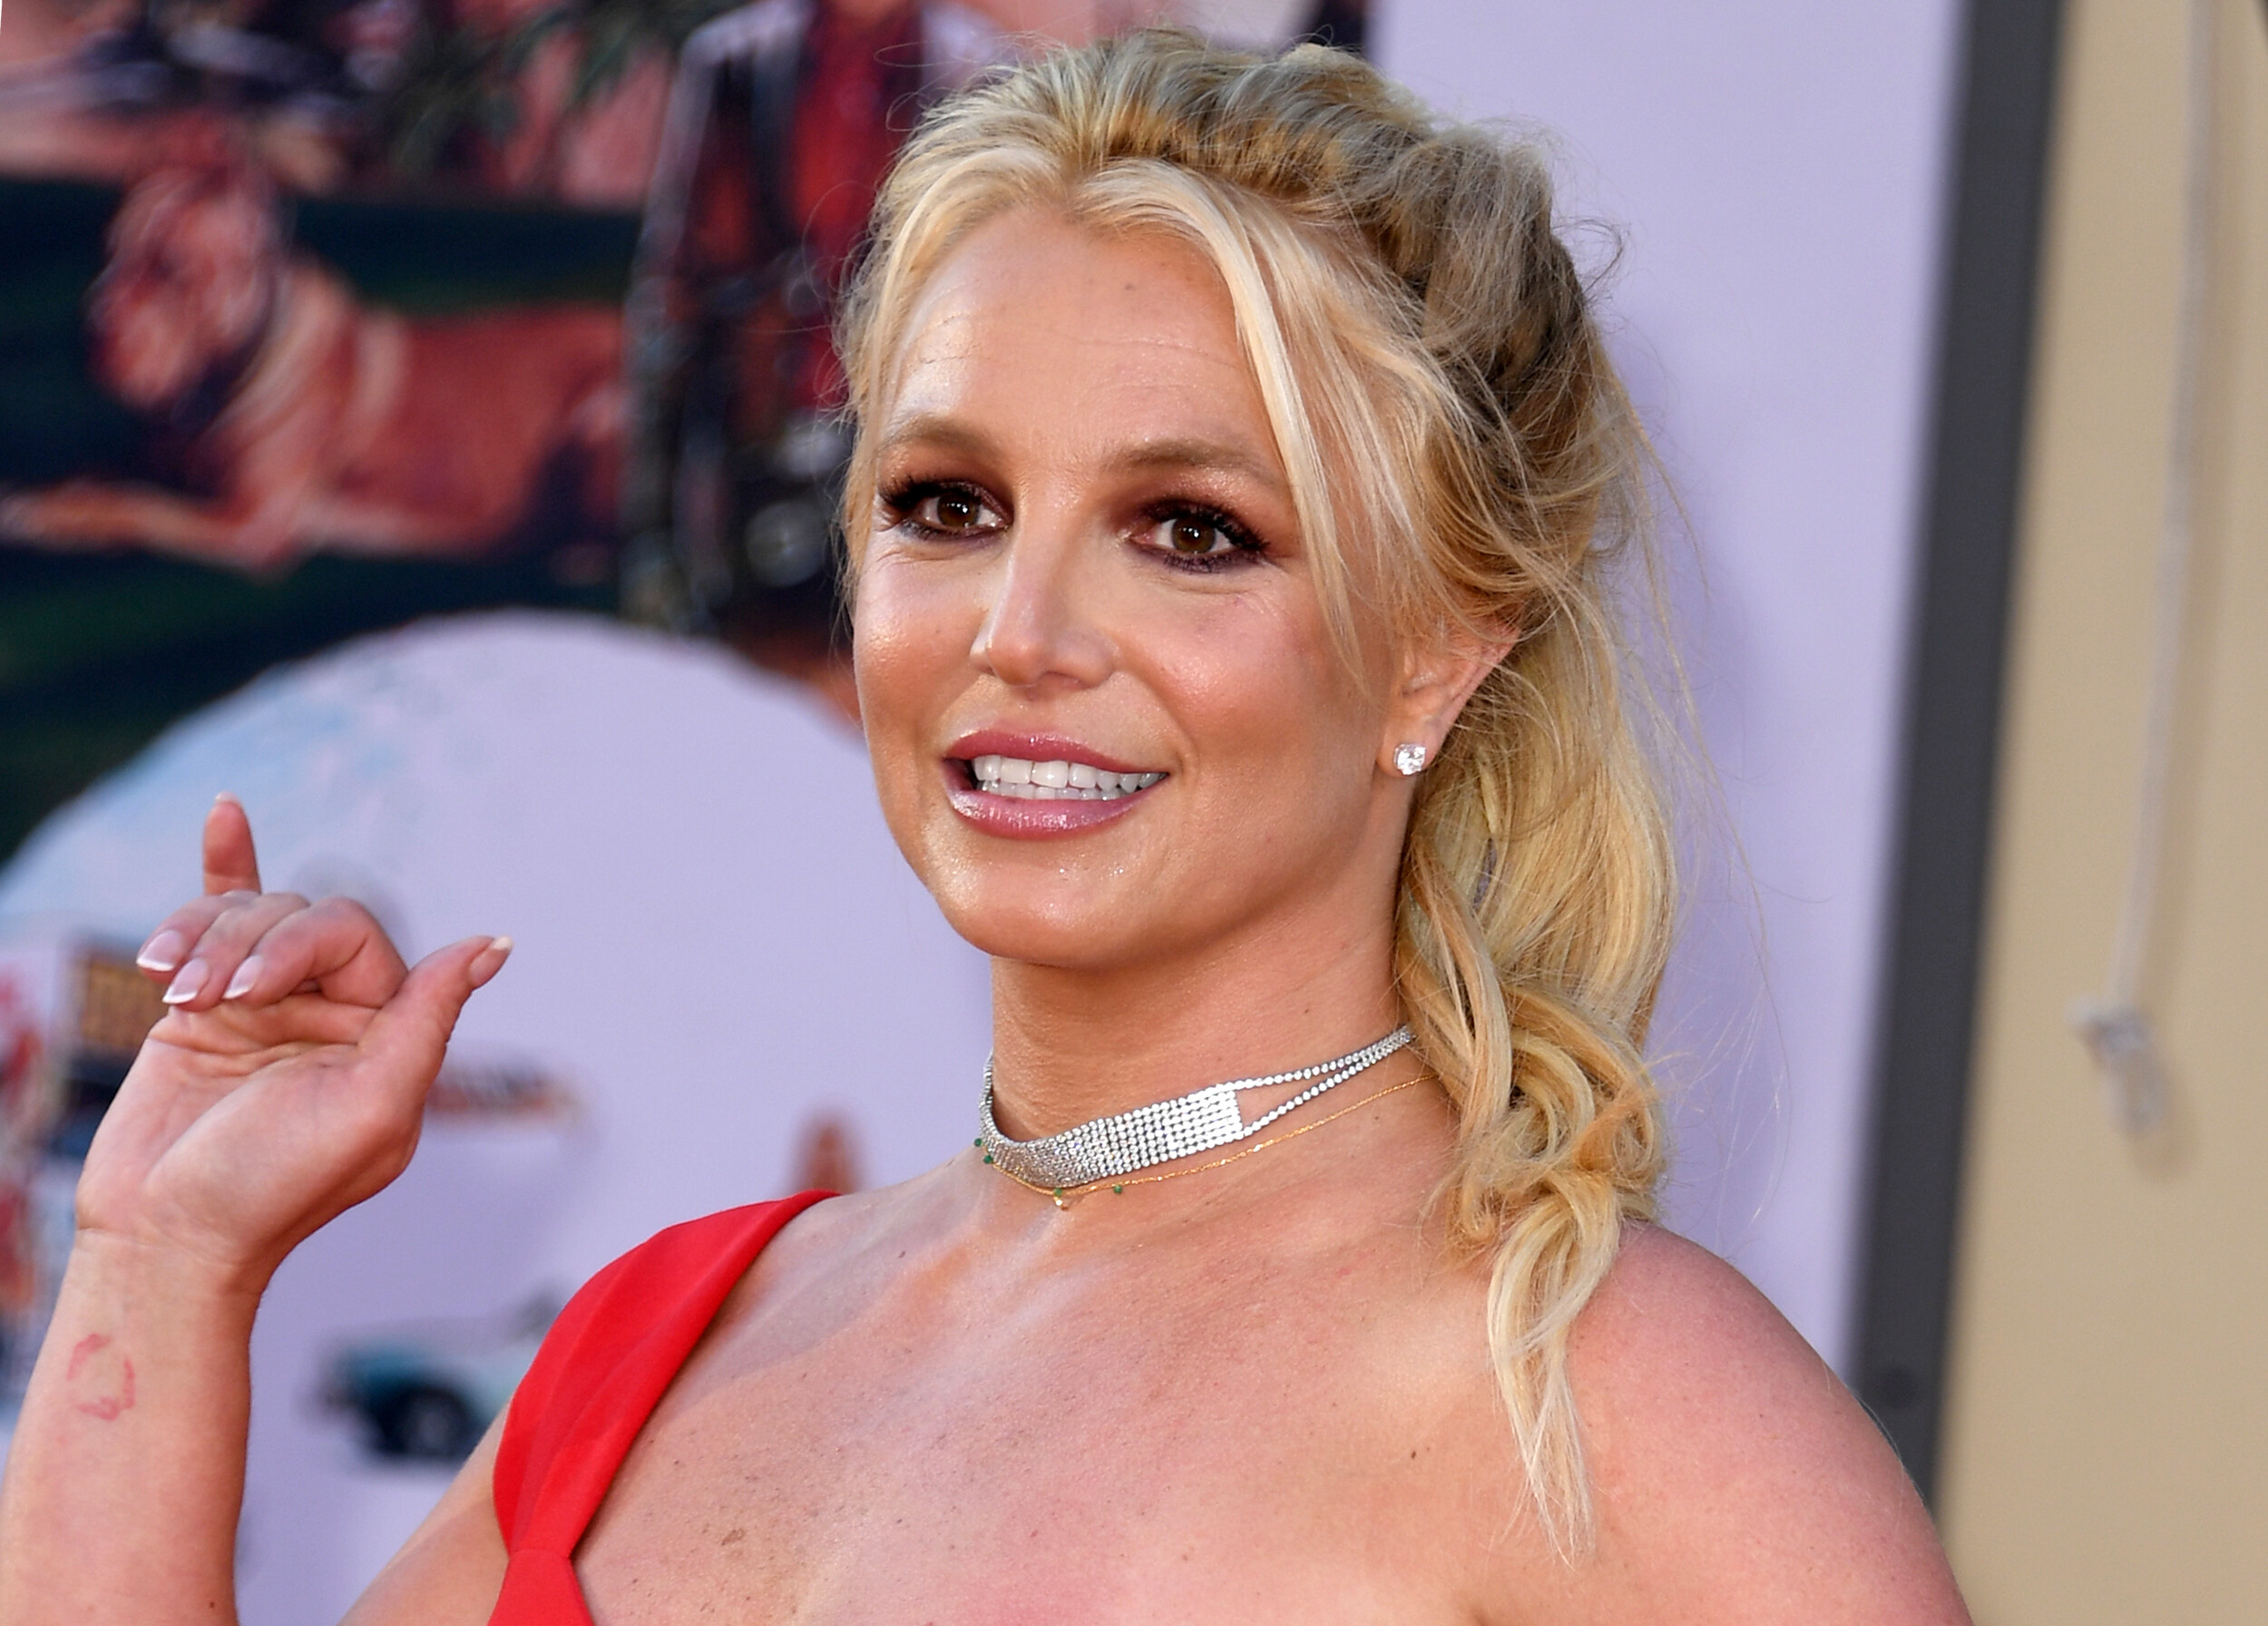 Is Britney Spears #free yet? Not quite